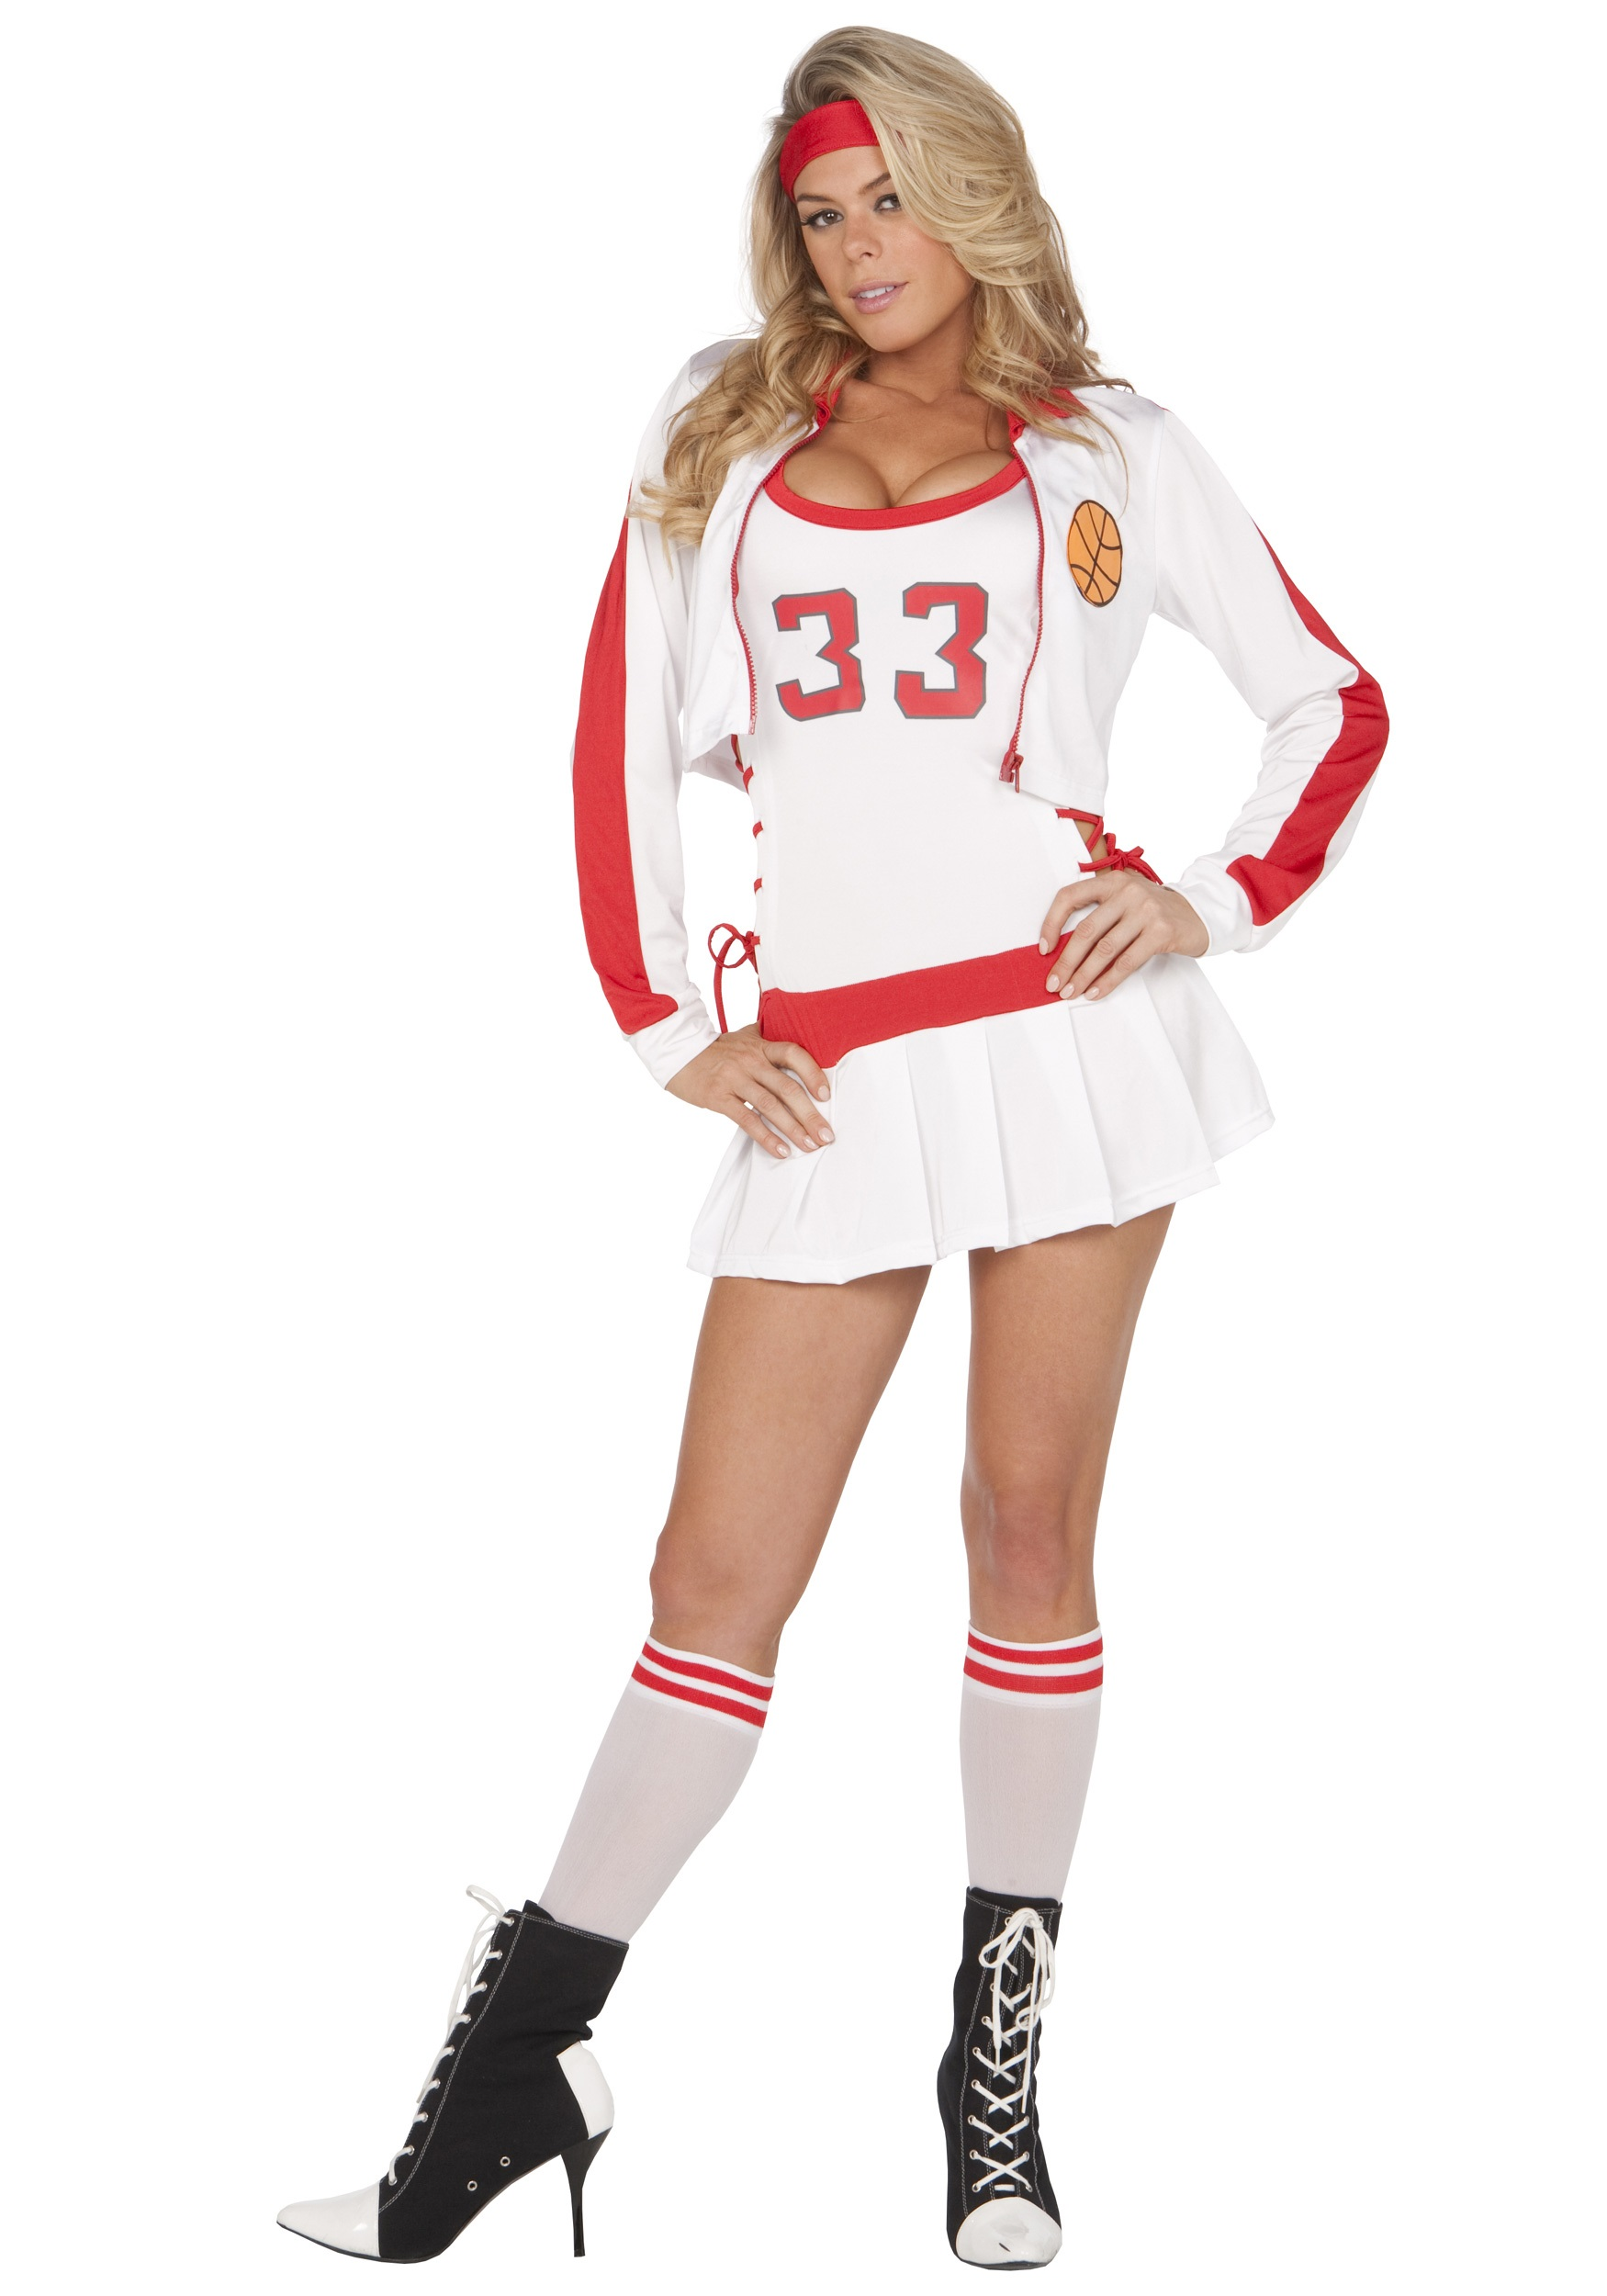 Sexy basketball player costume